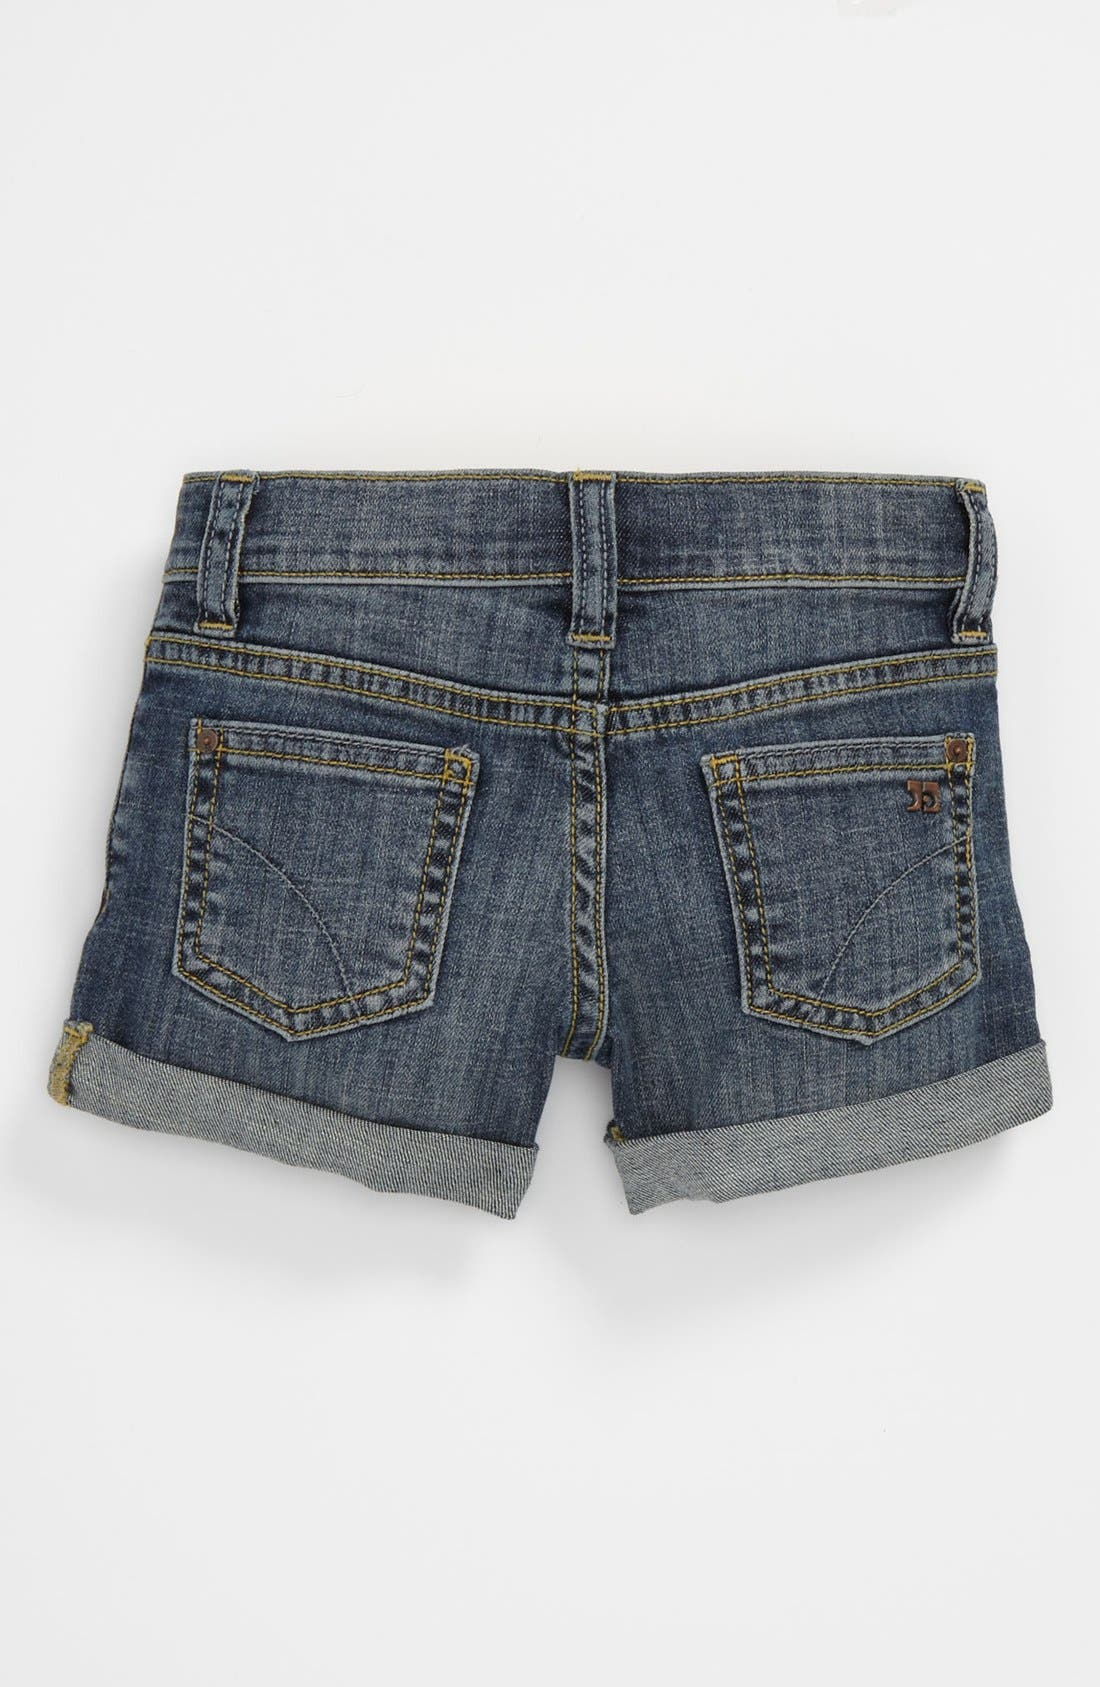 Alternate Image 1 Selected - Joe's 'New Rolled Mini' Denim Shorts (Toddler Girls)